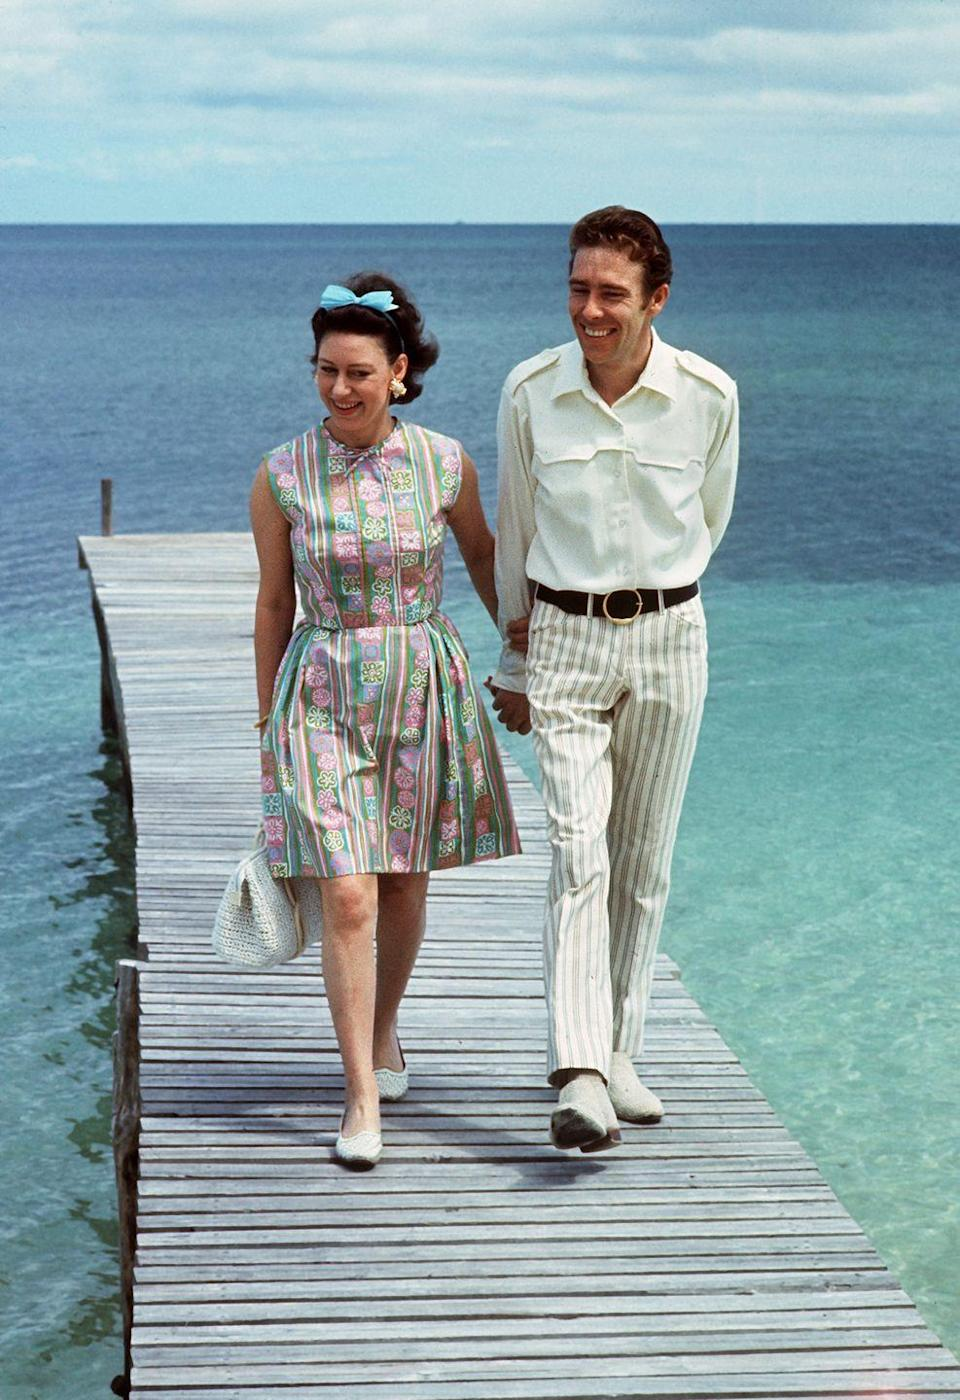 <p>In this photo, taken in 1967, Princess Margaret and husband Antony Armstrong-Jones are enjoying the teal blue waters of the Bahamas, a favorite destination of the princess. </p>